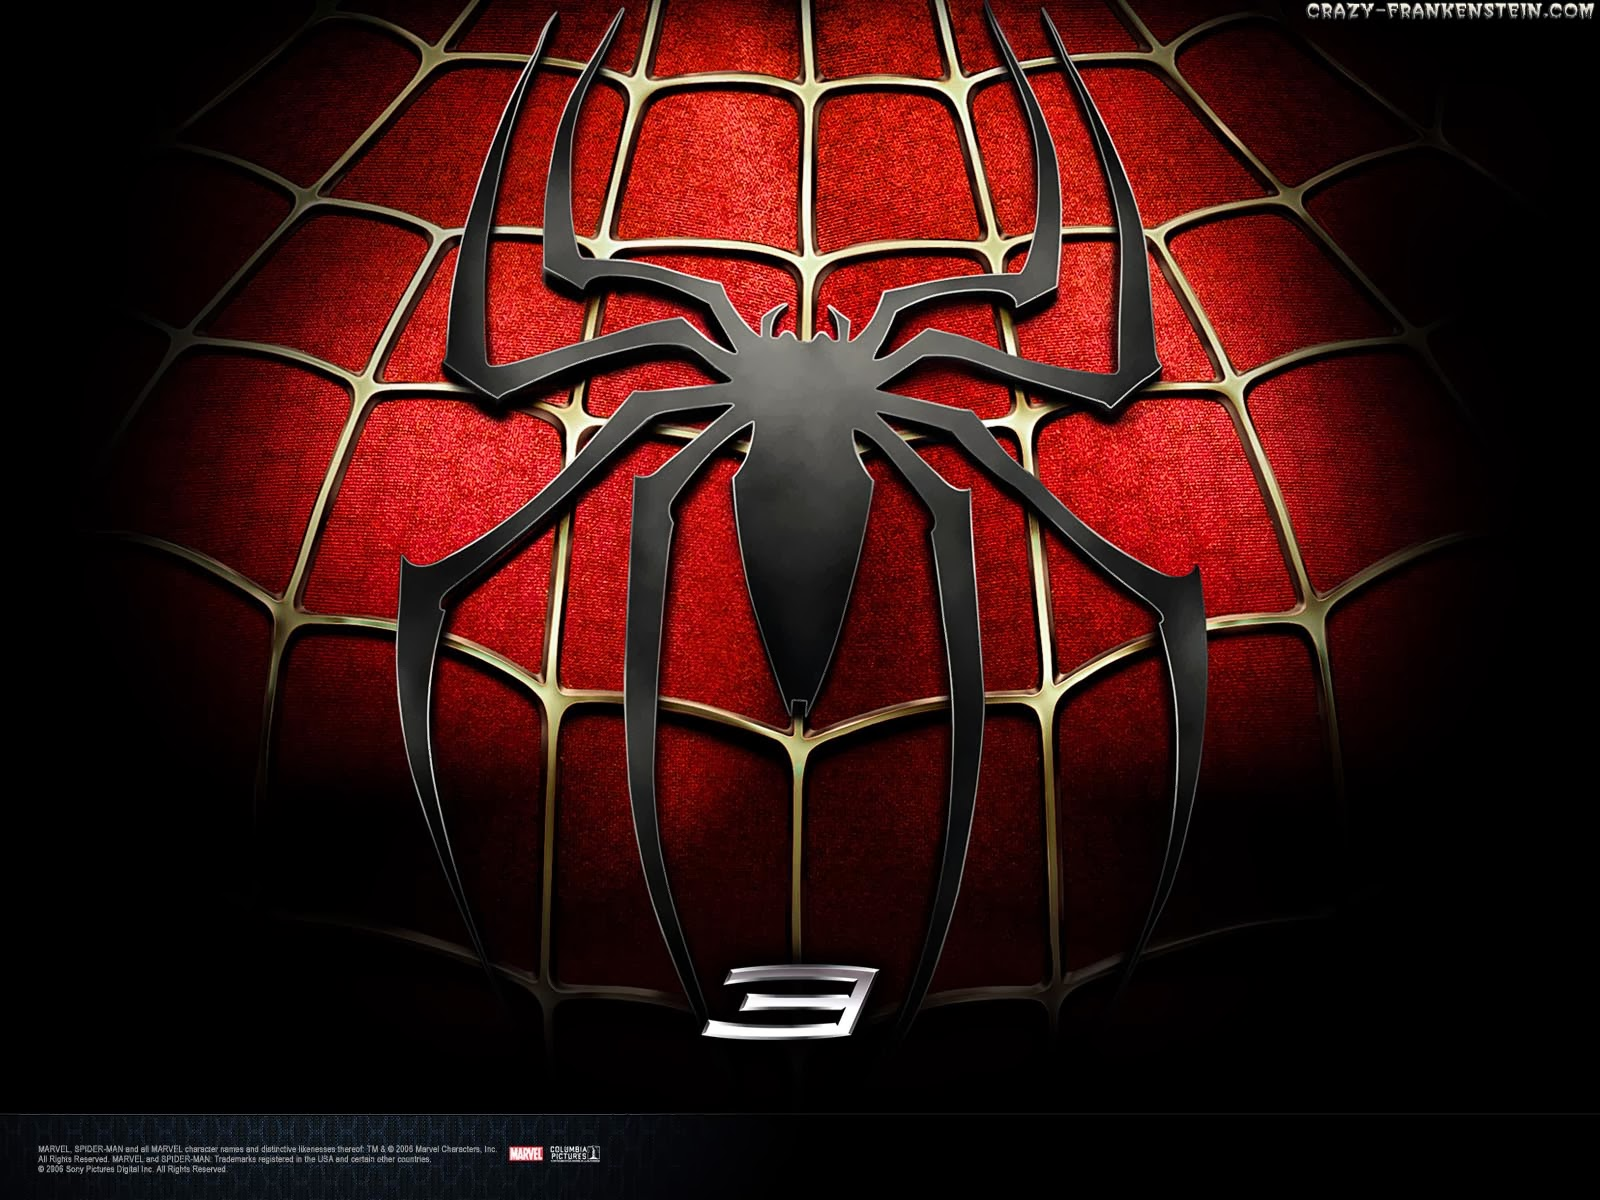 world of archives!: spiderman 3 free download pc game full version